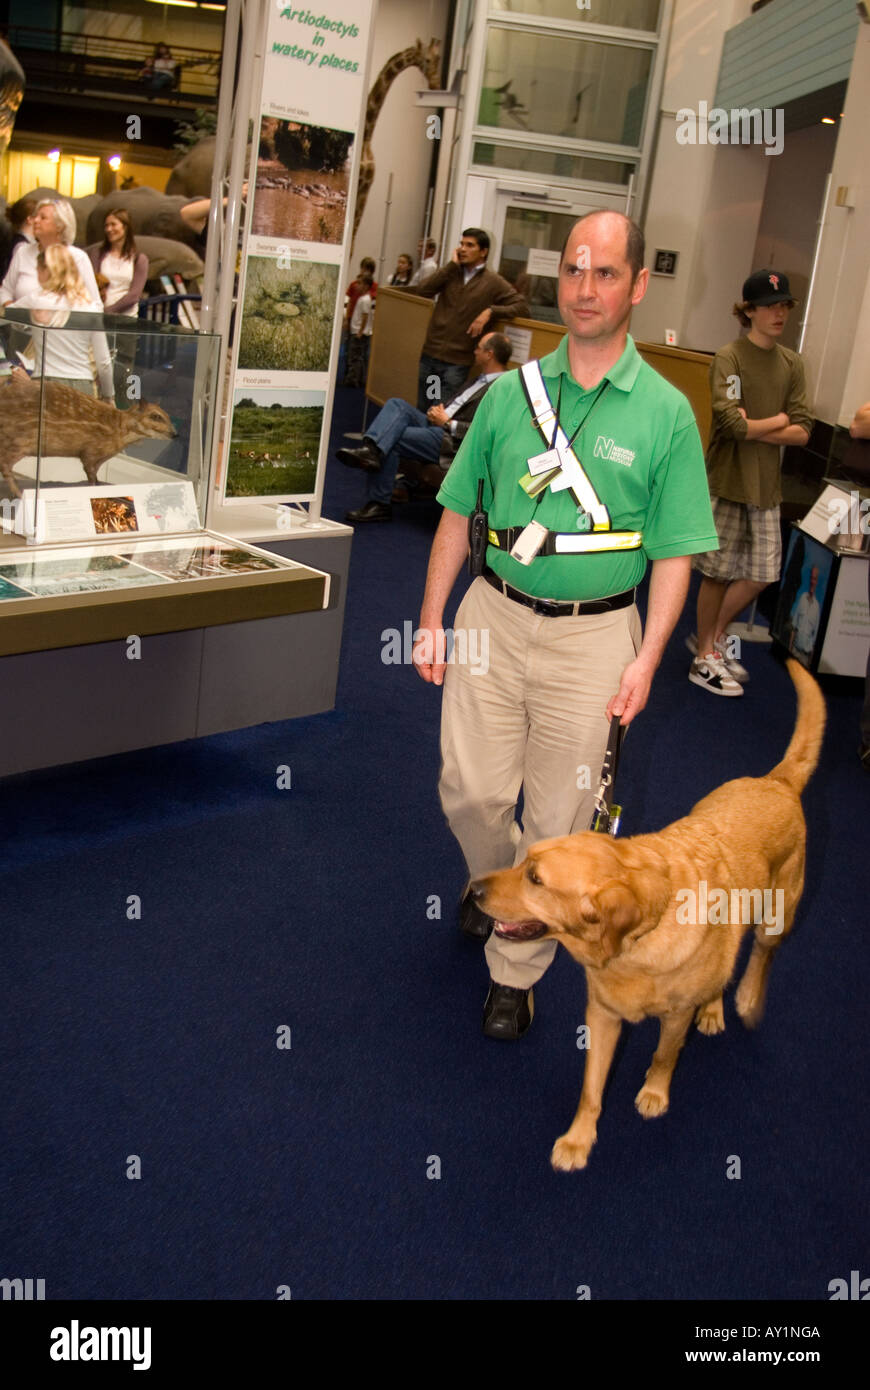 Working at guide dogs for the blind | glassdoor.